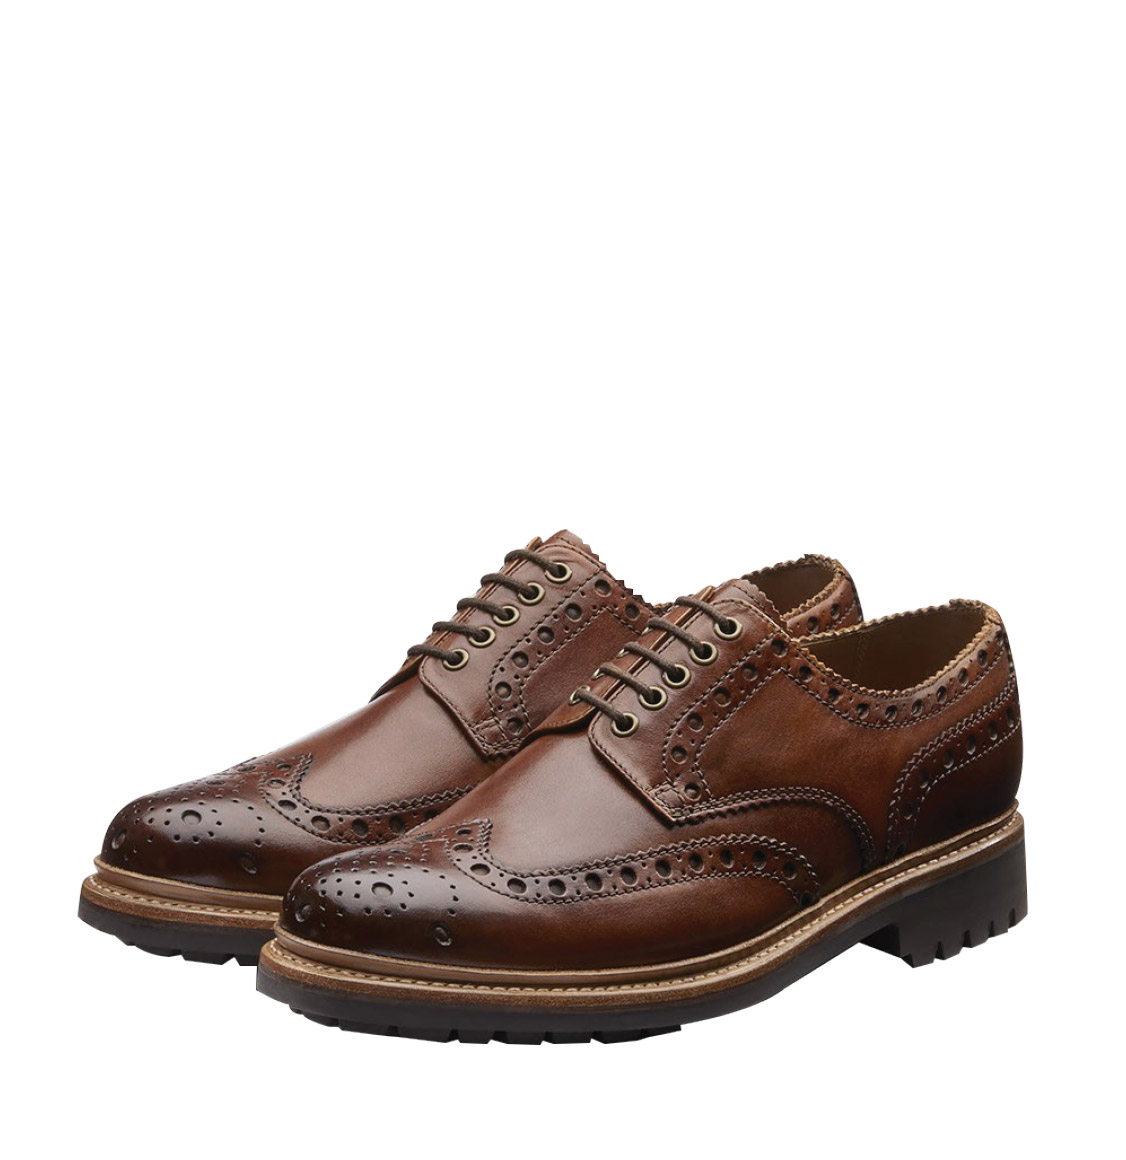 Grenson Archie Goodyear Tan Oxford Brogue Leather Shoes